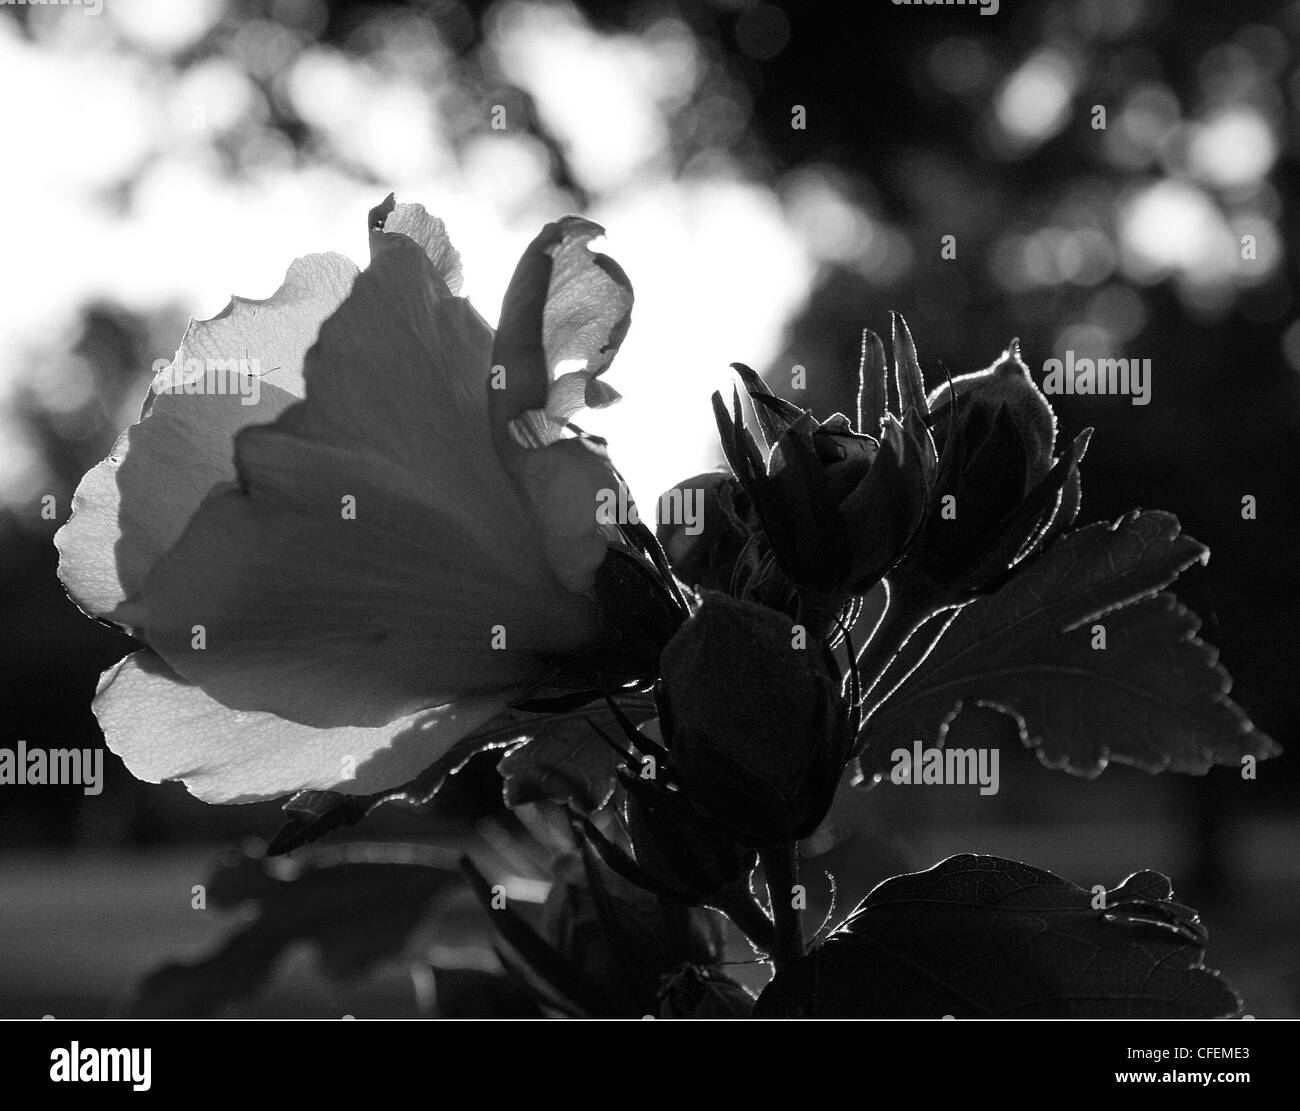 Black and White silhouette of a Rose of Sharron flower in the evening light. - Stock Image